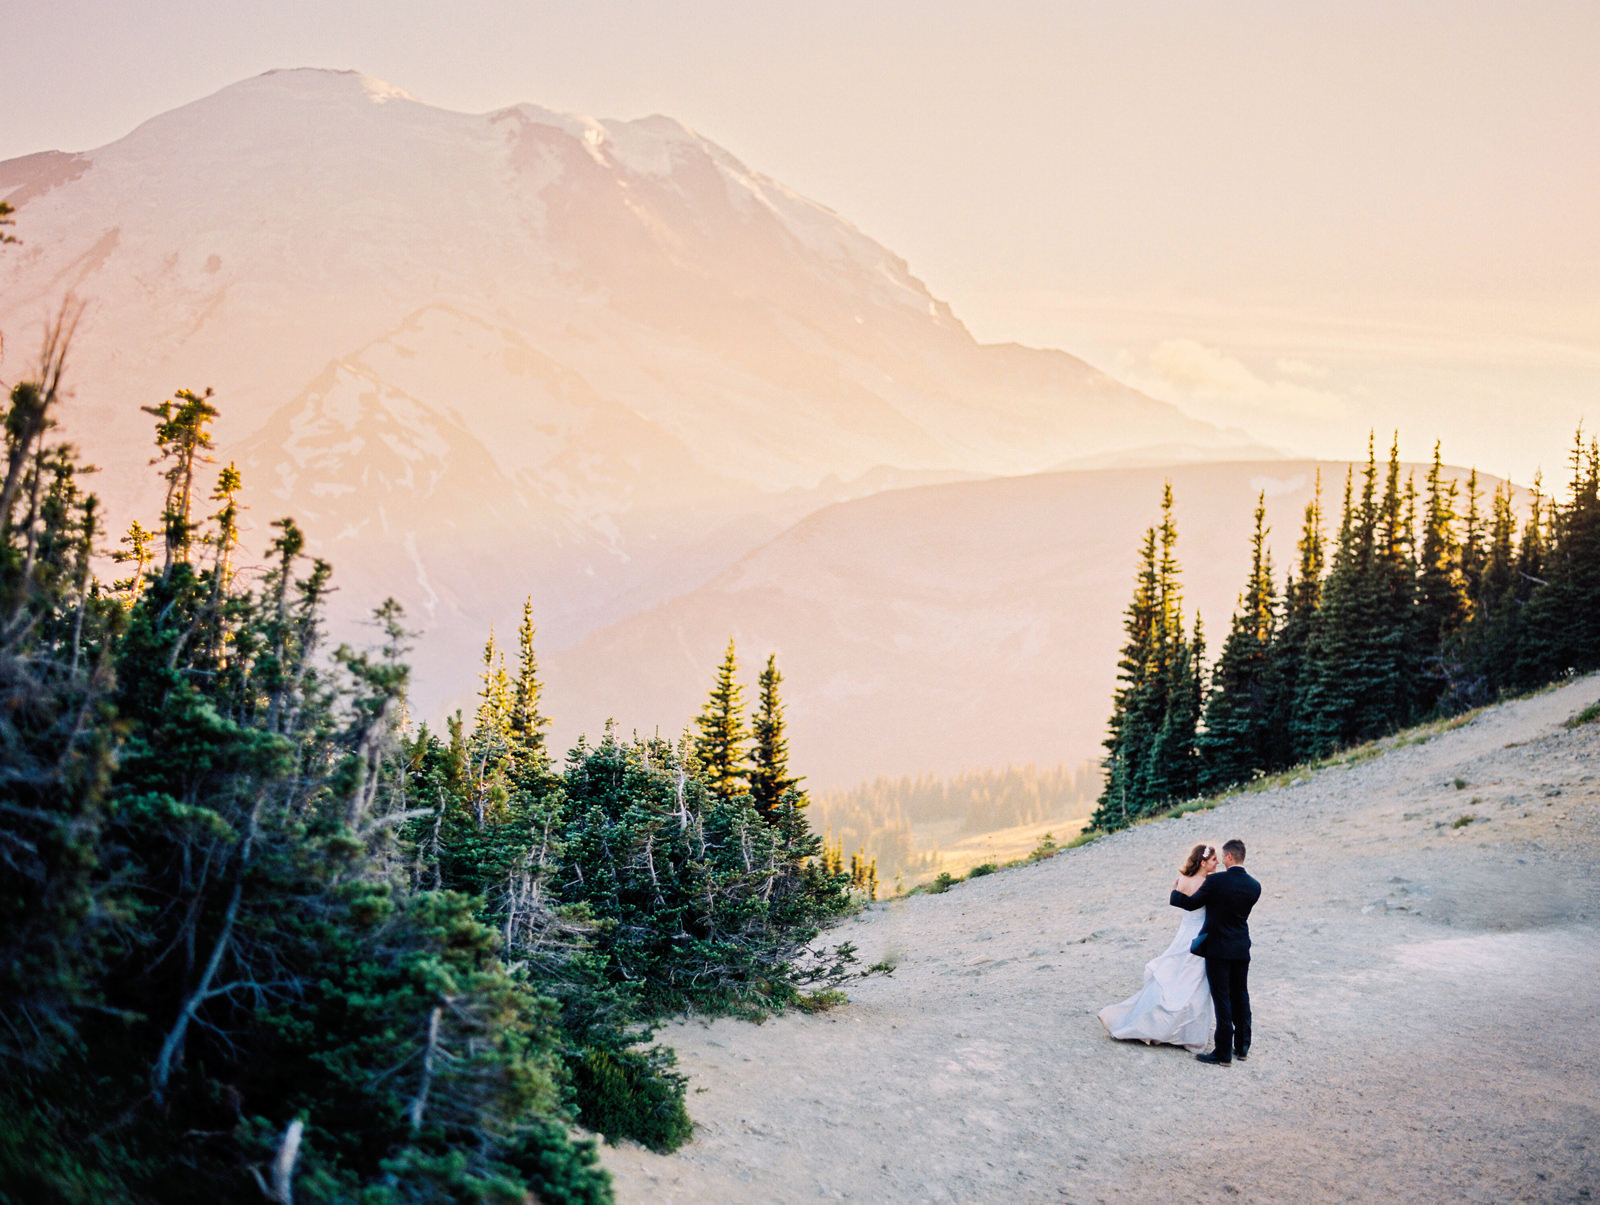 026-elopement-photo-at-mt-rainier-with-amazing-sunset-by-film-photographer-ryan-flynn-photography.jpg